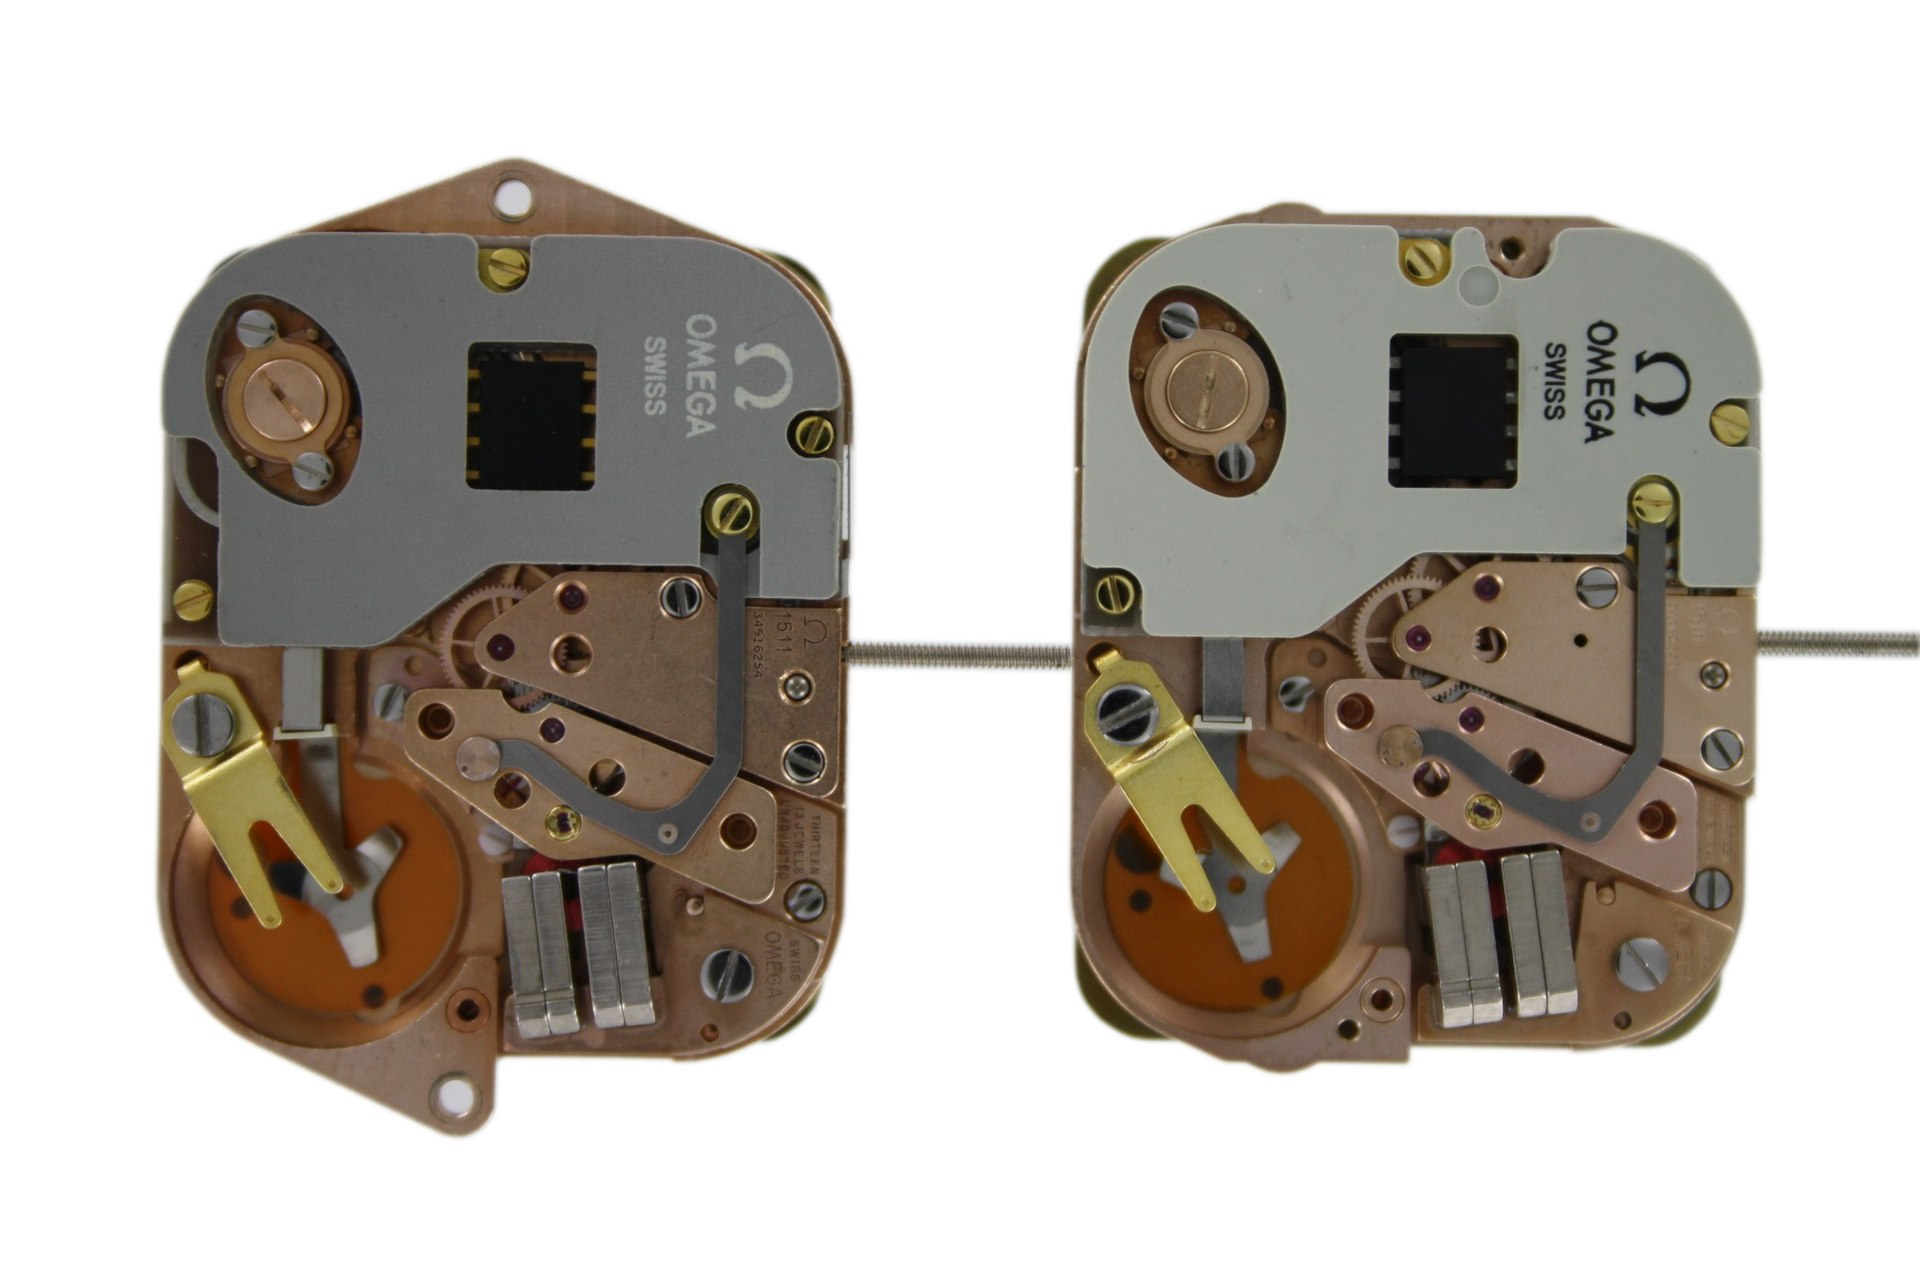 1920px-Omega_1511_and_1516_movement.jpg